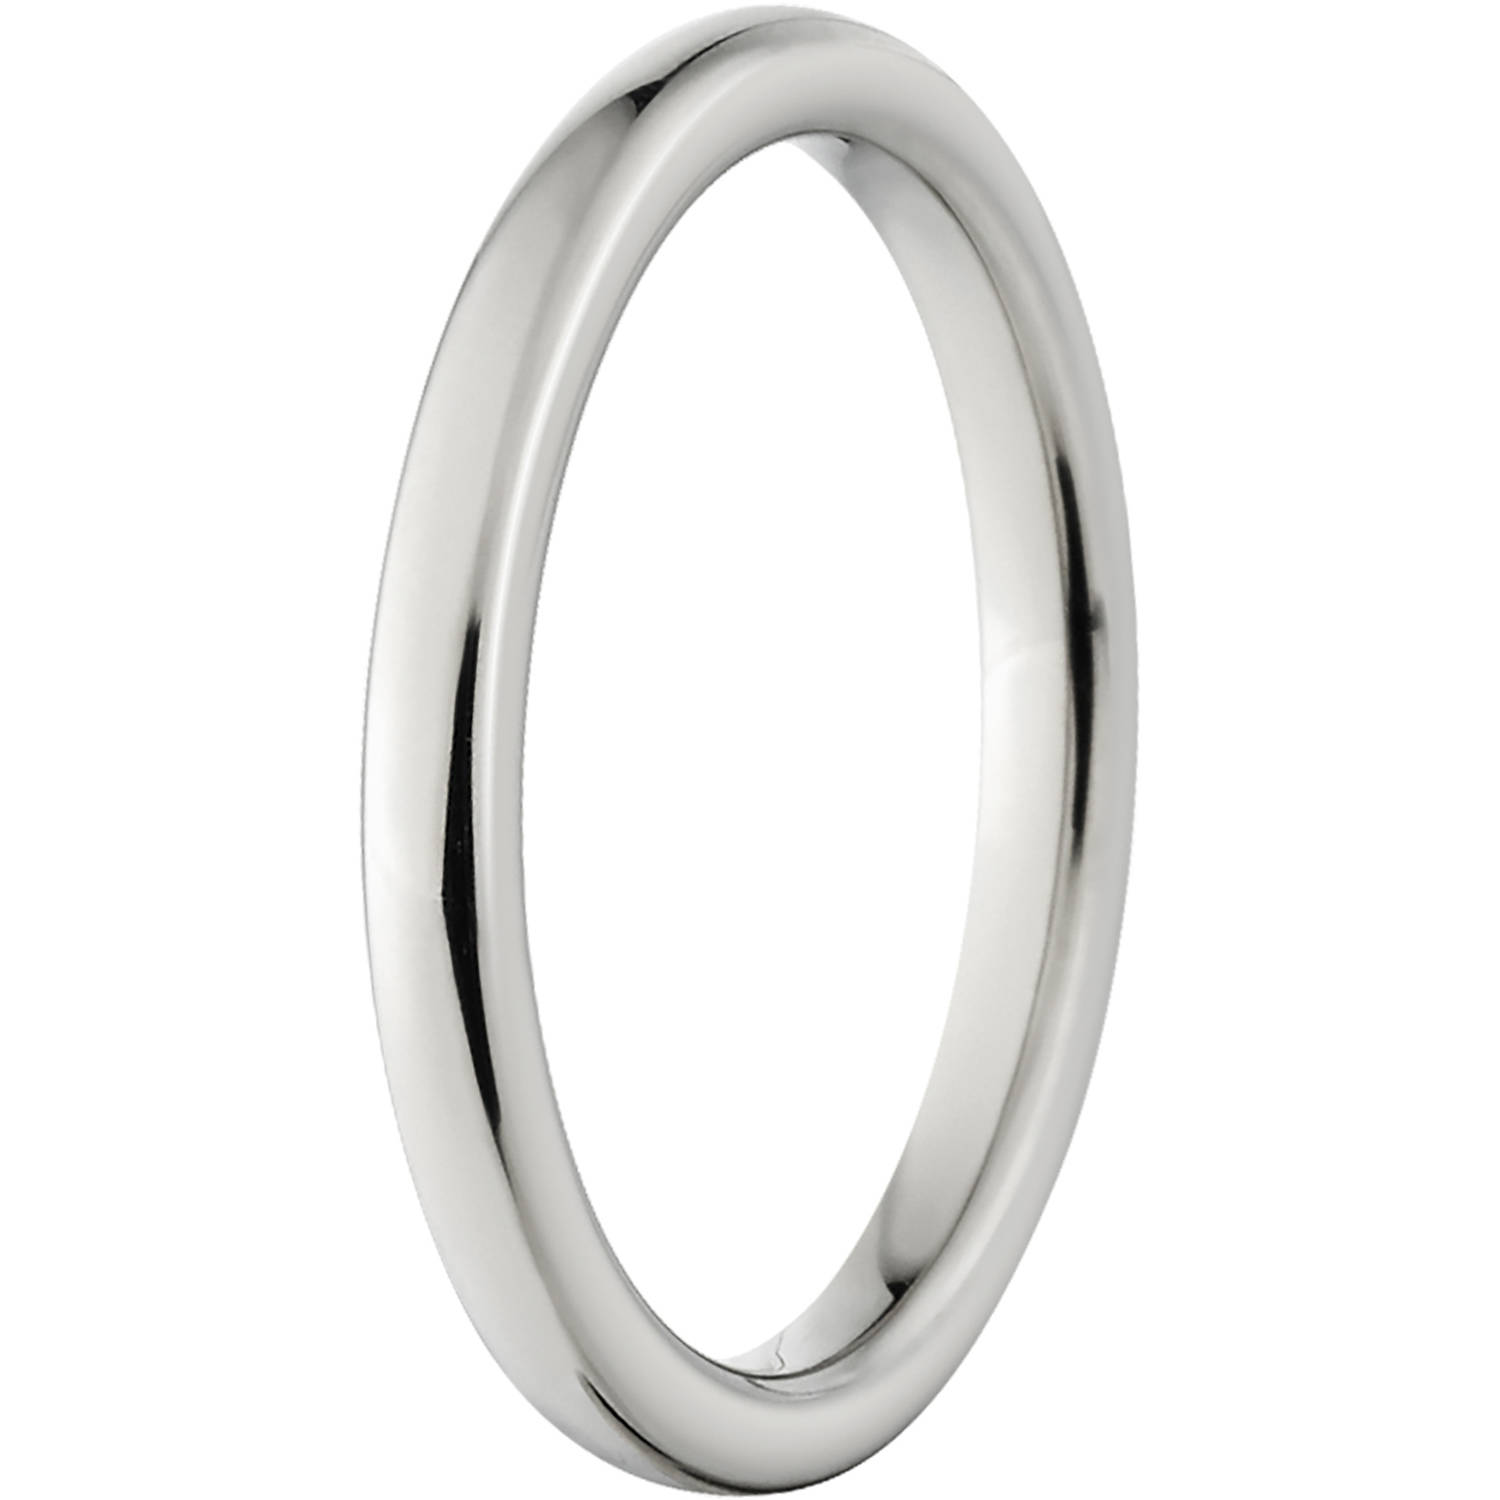 polished 3mm titanium wedding band with fort fit design